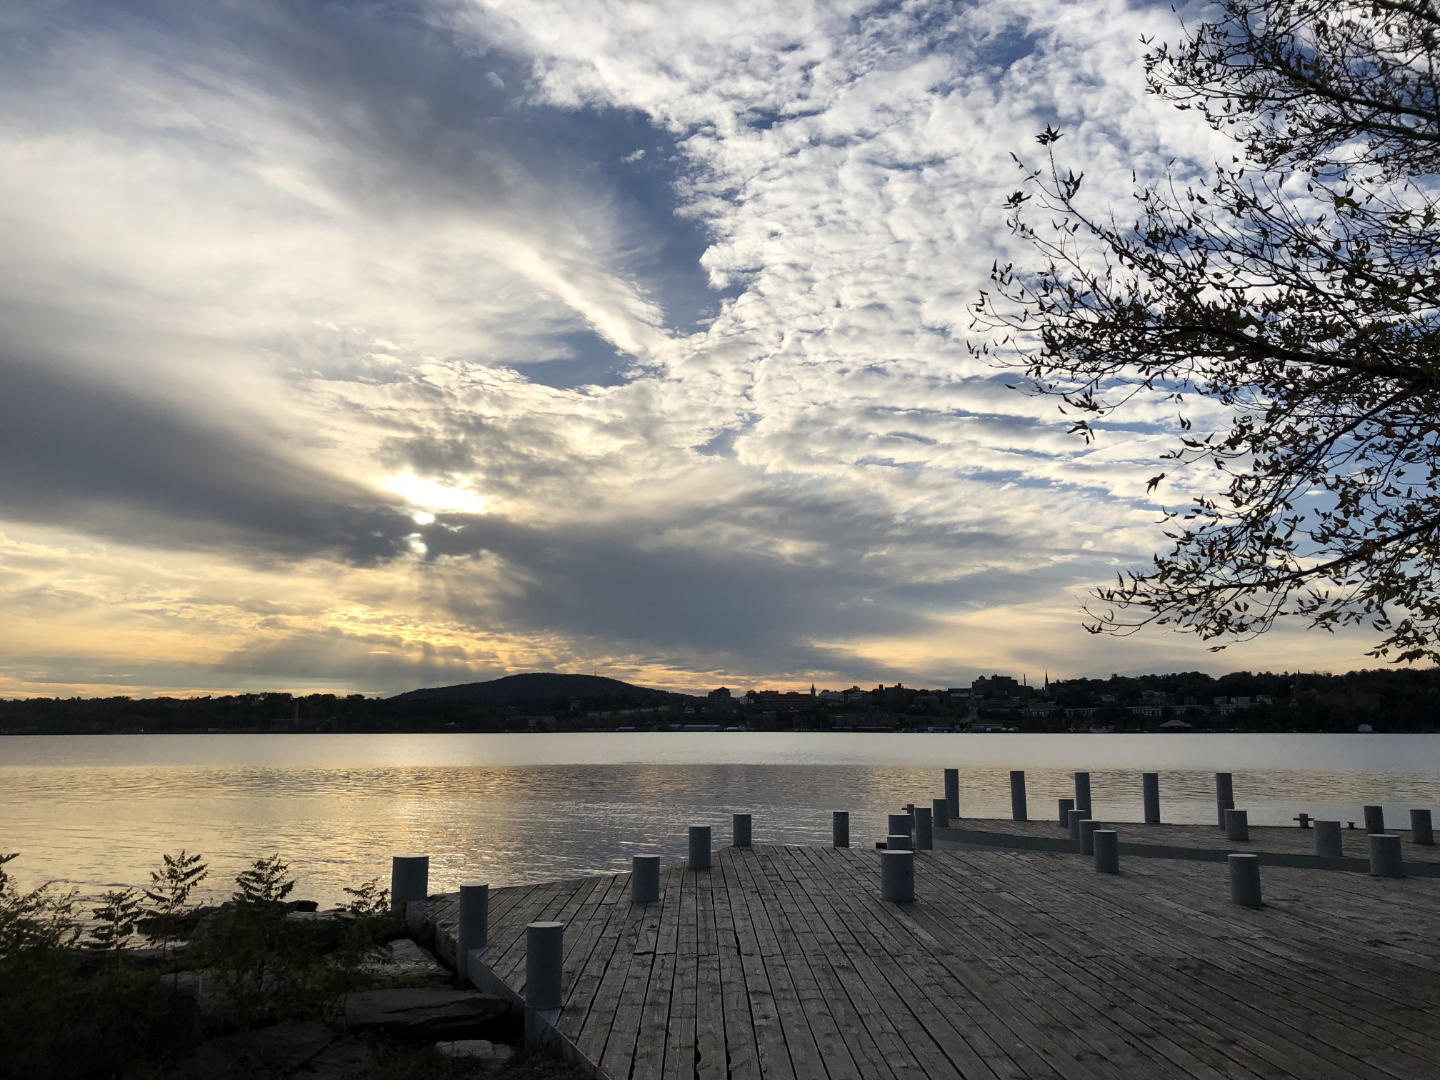 A view of the Hudson River towards Newburgh from Long Dock Park in Beacon, NY